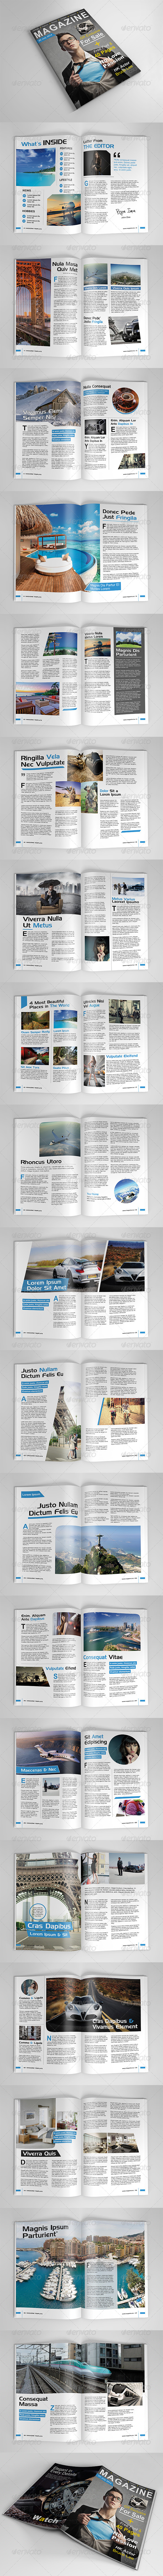 GraphicRiver A4 Magazine Template Vol 3 8180997